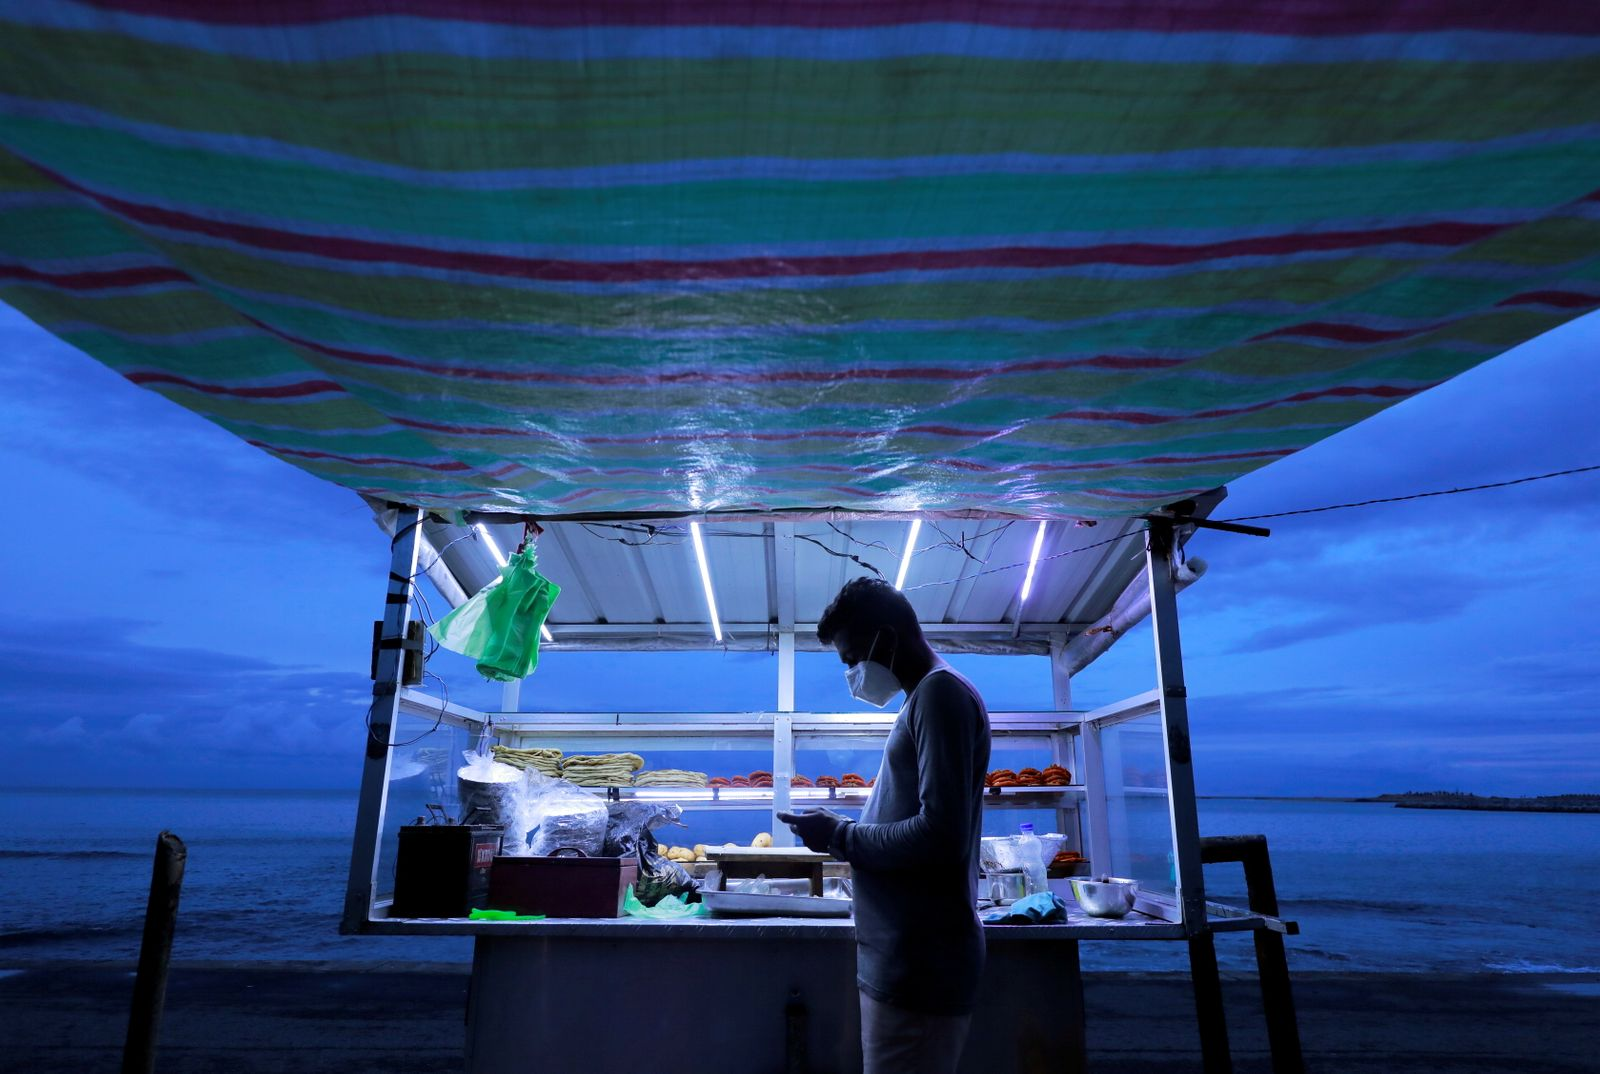 A street vendor wearing a face mask uses his mobile phone while waiting for customers at his food stall near a beach in Colombo